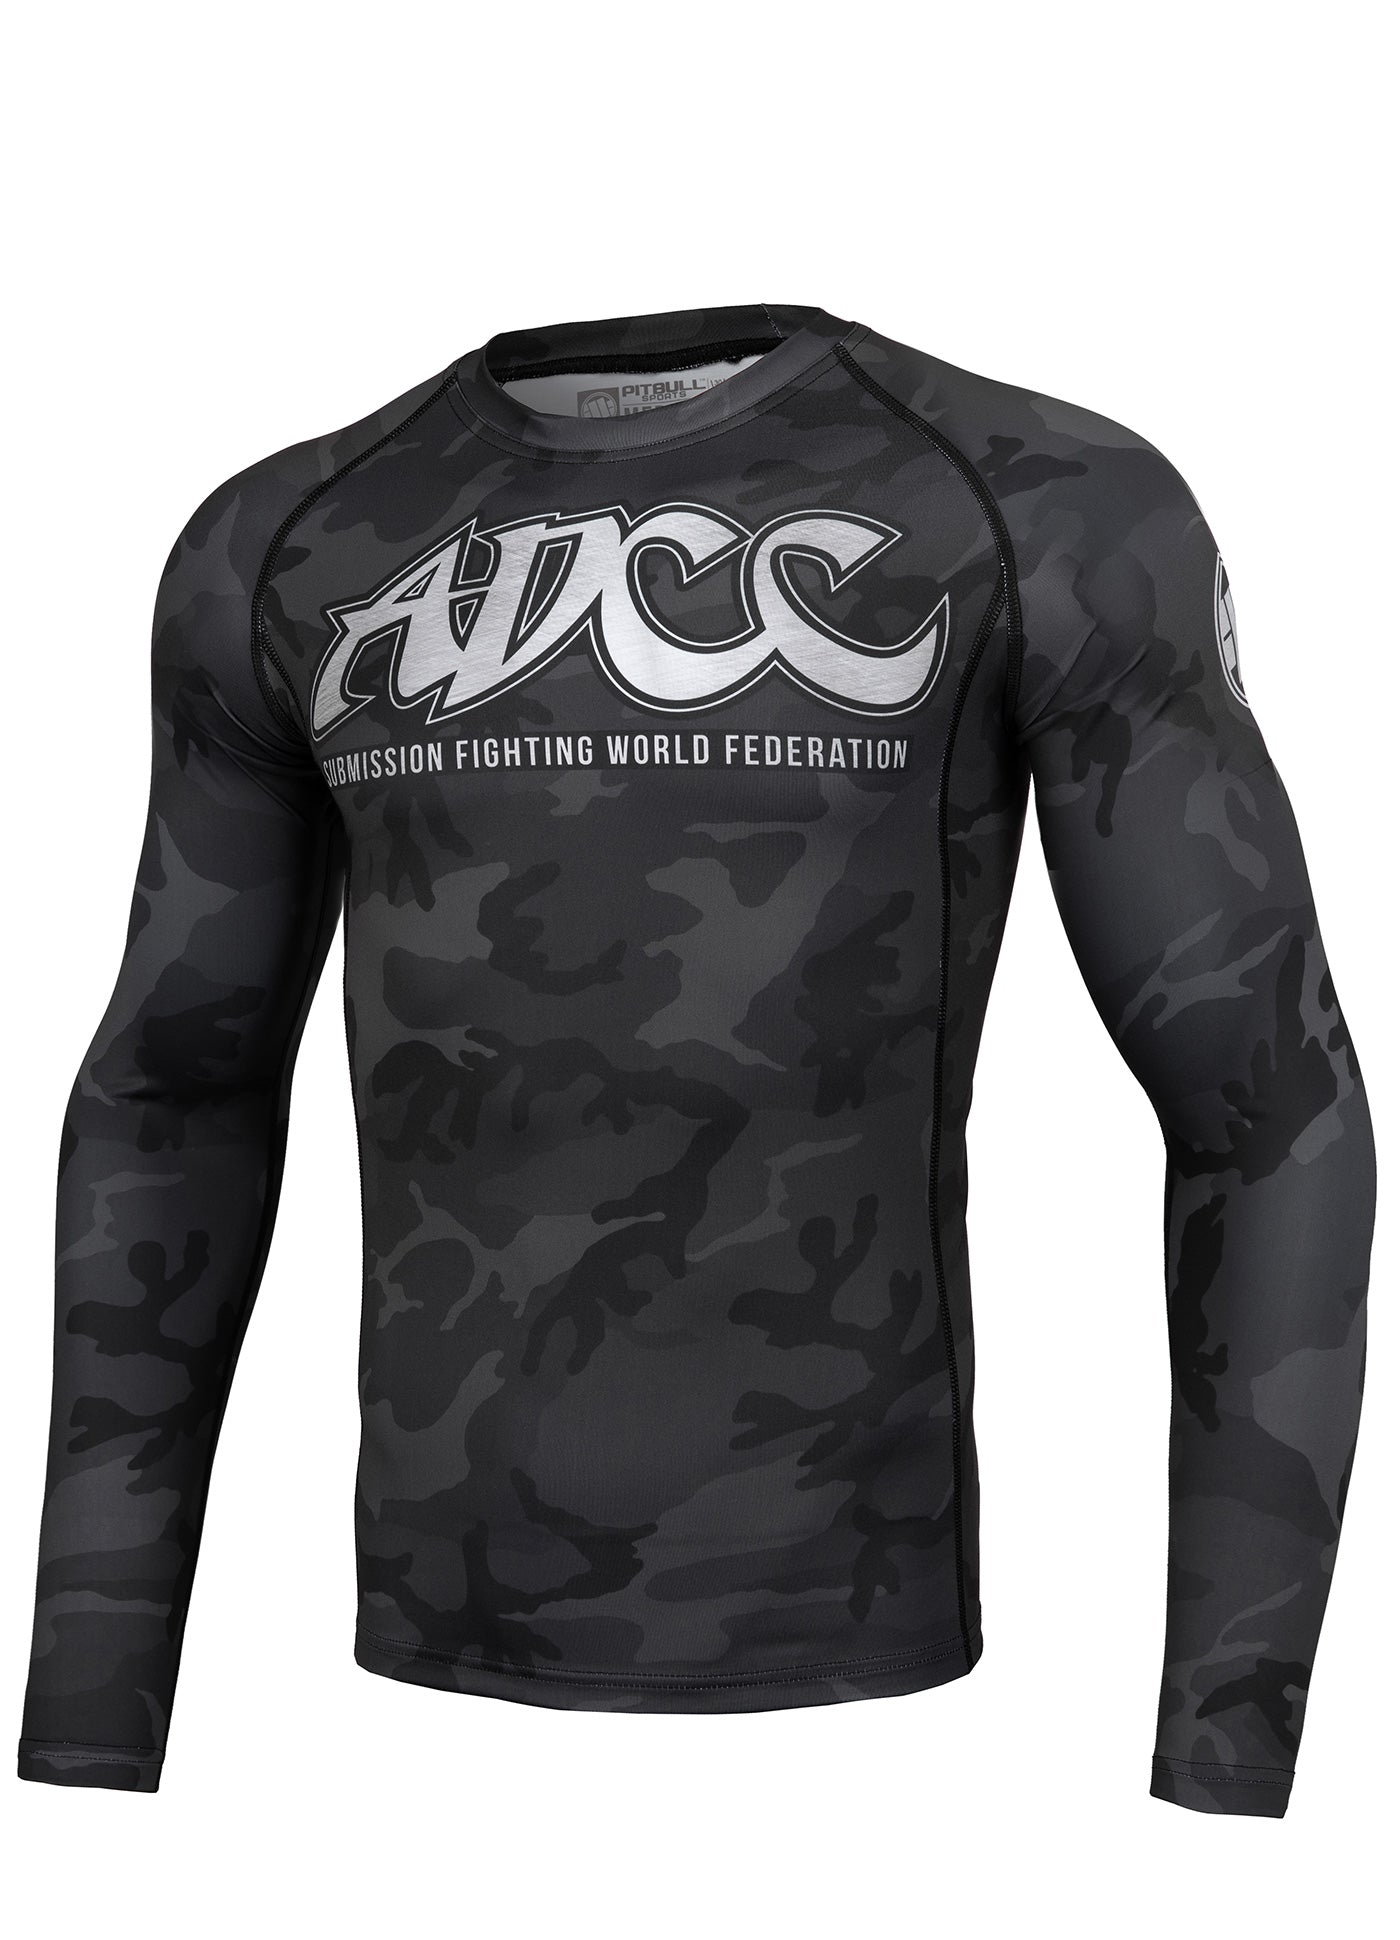 ADCC ALL BLACK Long Sleeve Rashguard - pitbullwestcoast